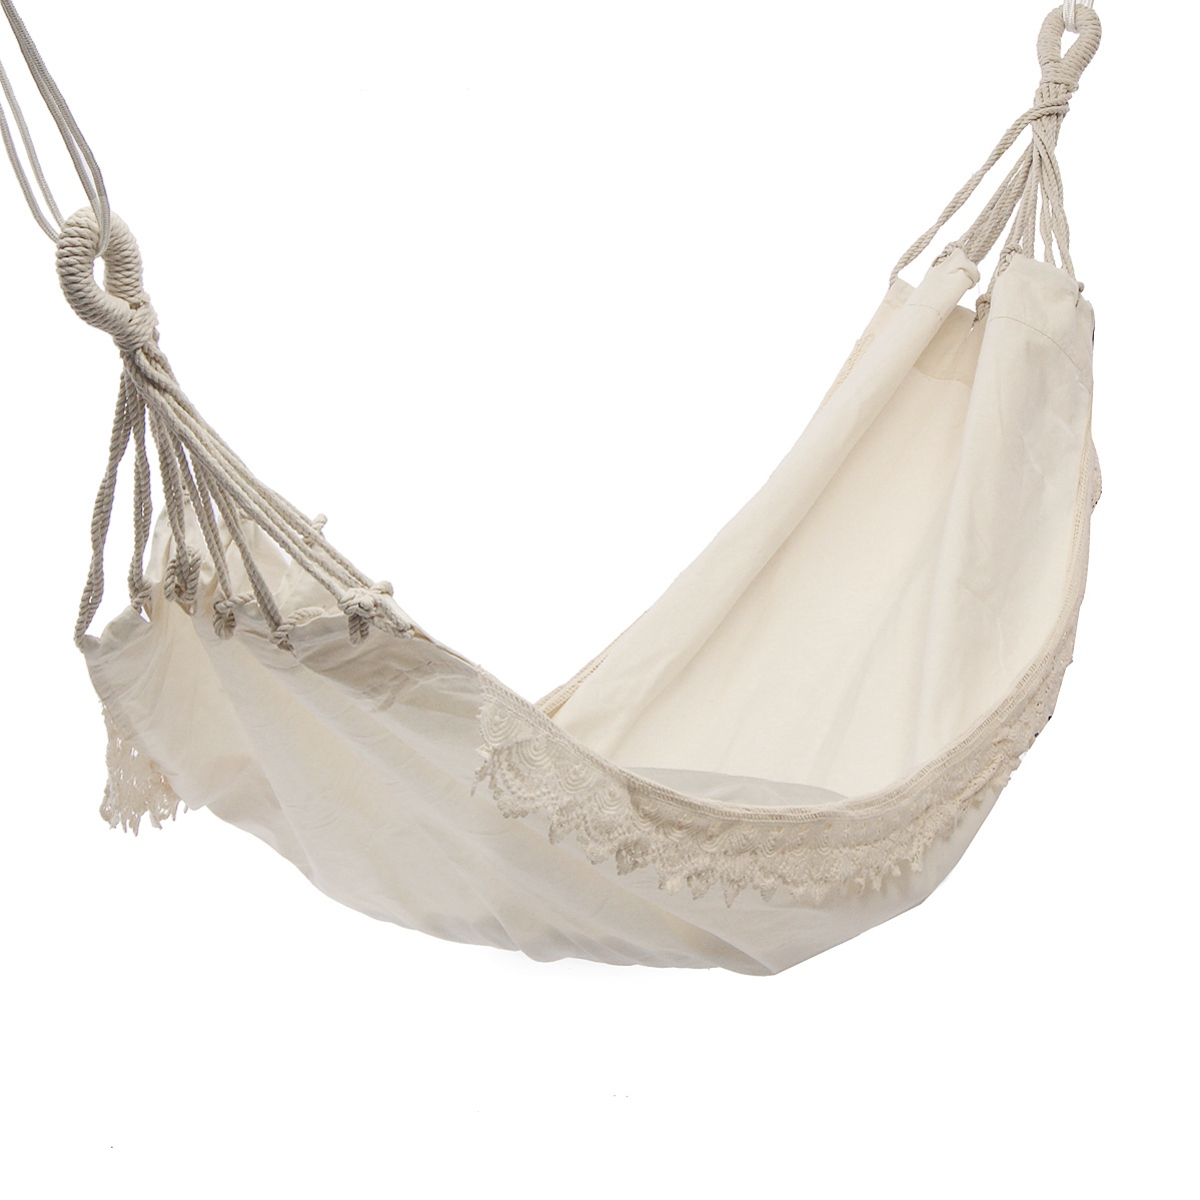 Us 22 52 13 Off Outdoor Camping Hammock Swing Portable Hanging Chair Pure White Romantic Lace For Travel Hiking Garden Sleeping Swing Portable In